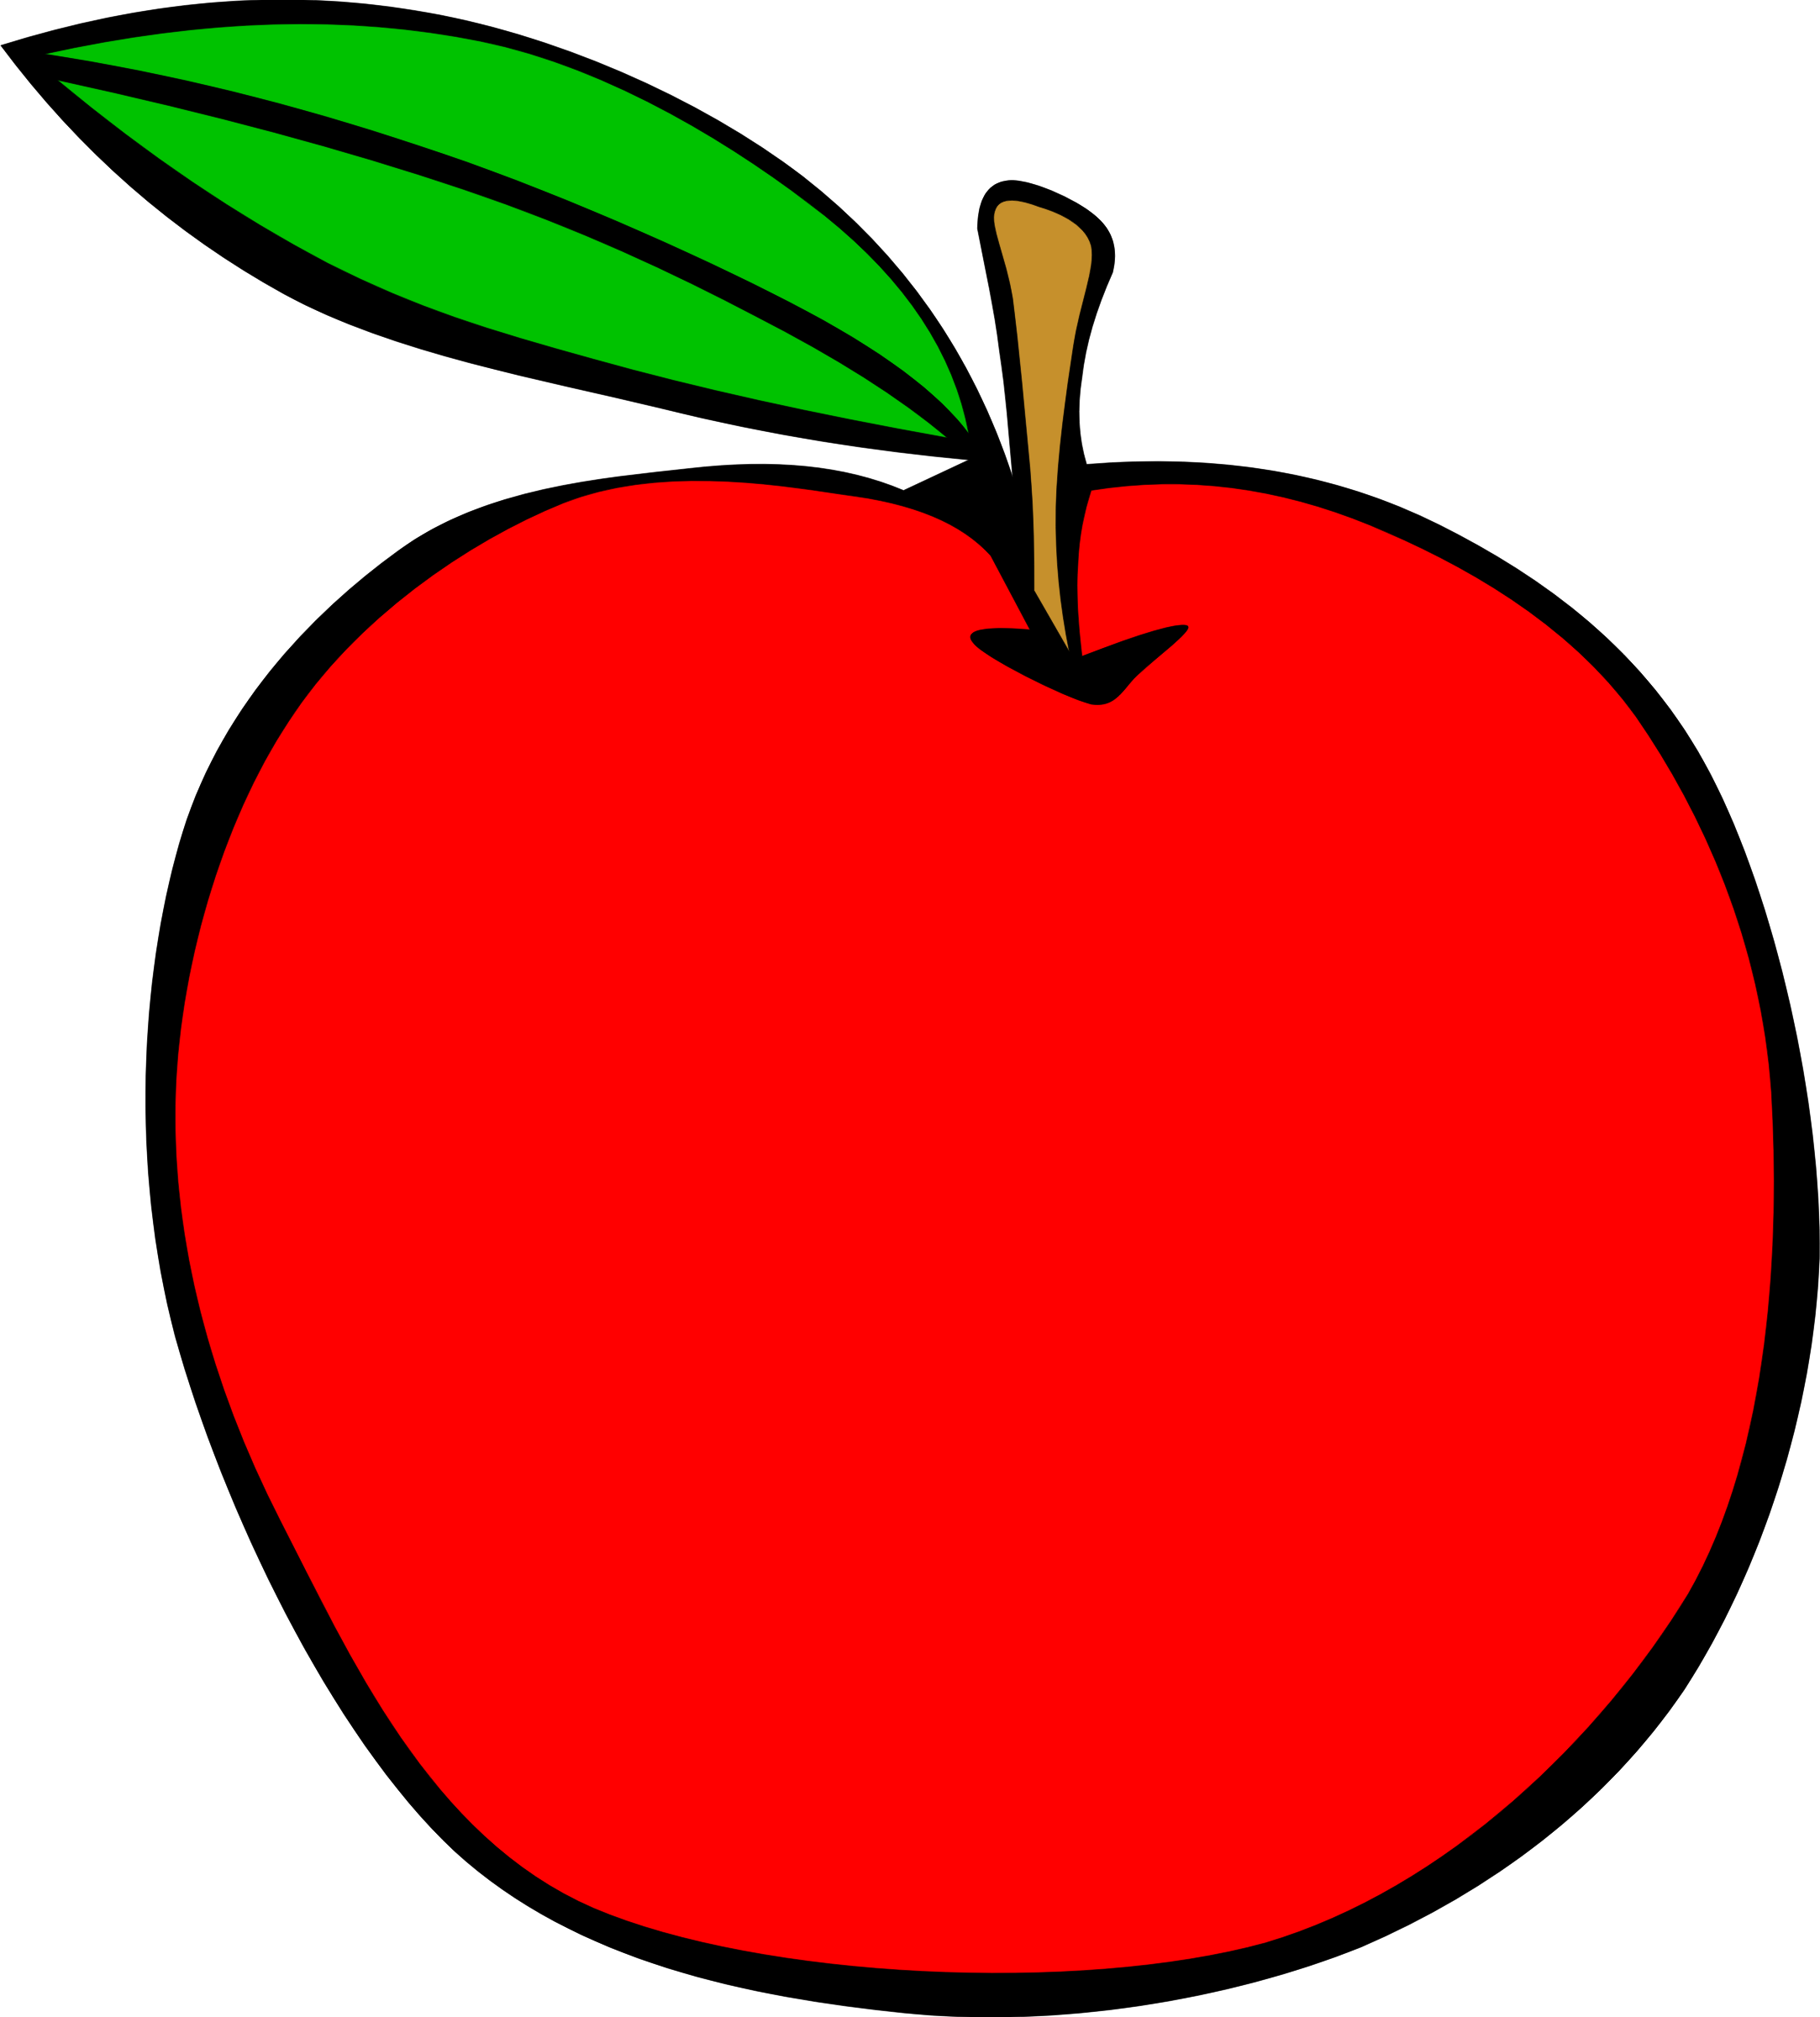 Of apple fruit clip. Free clipart for commercial use open half appl